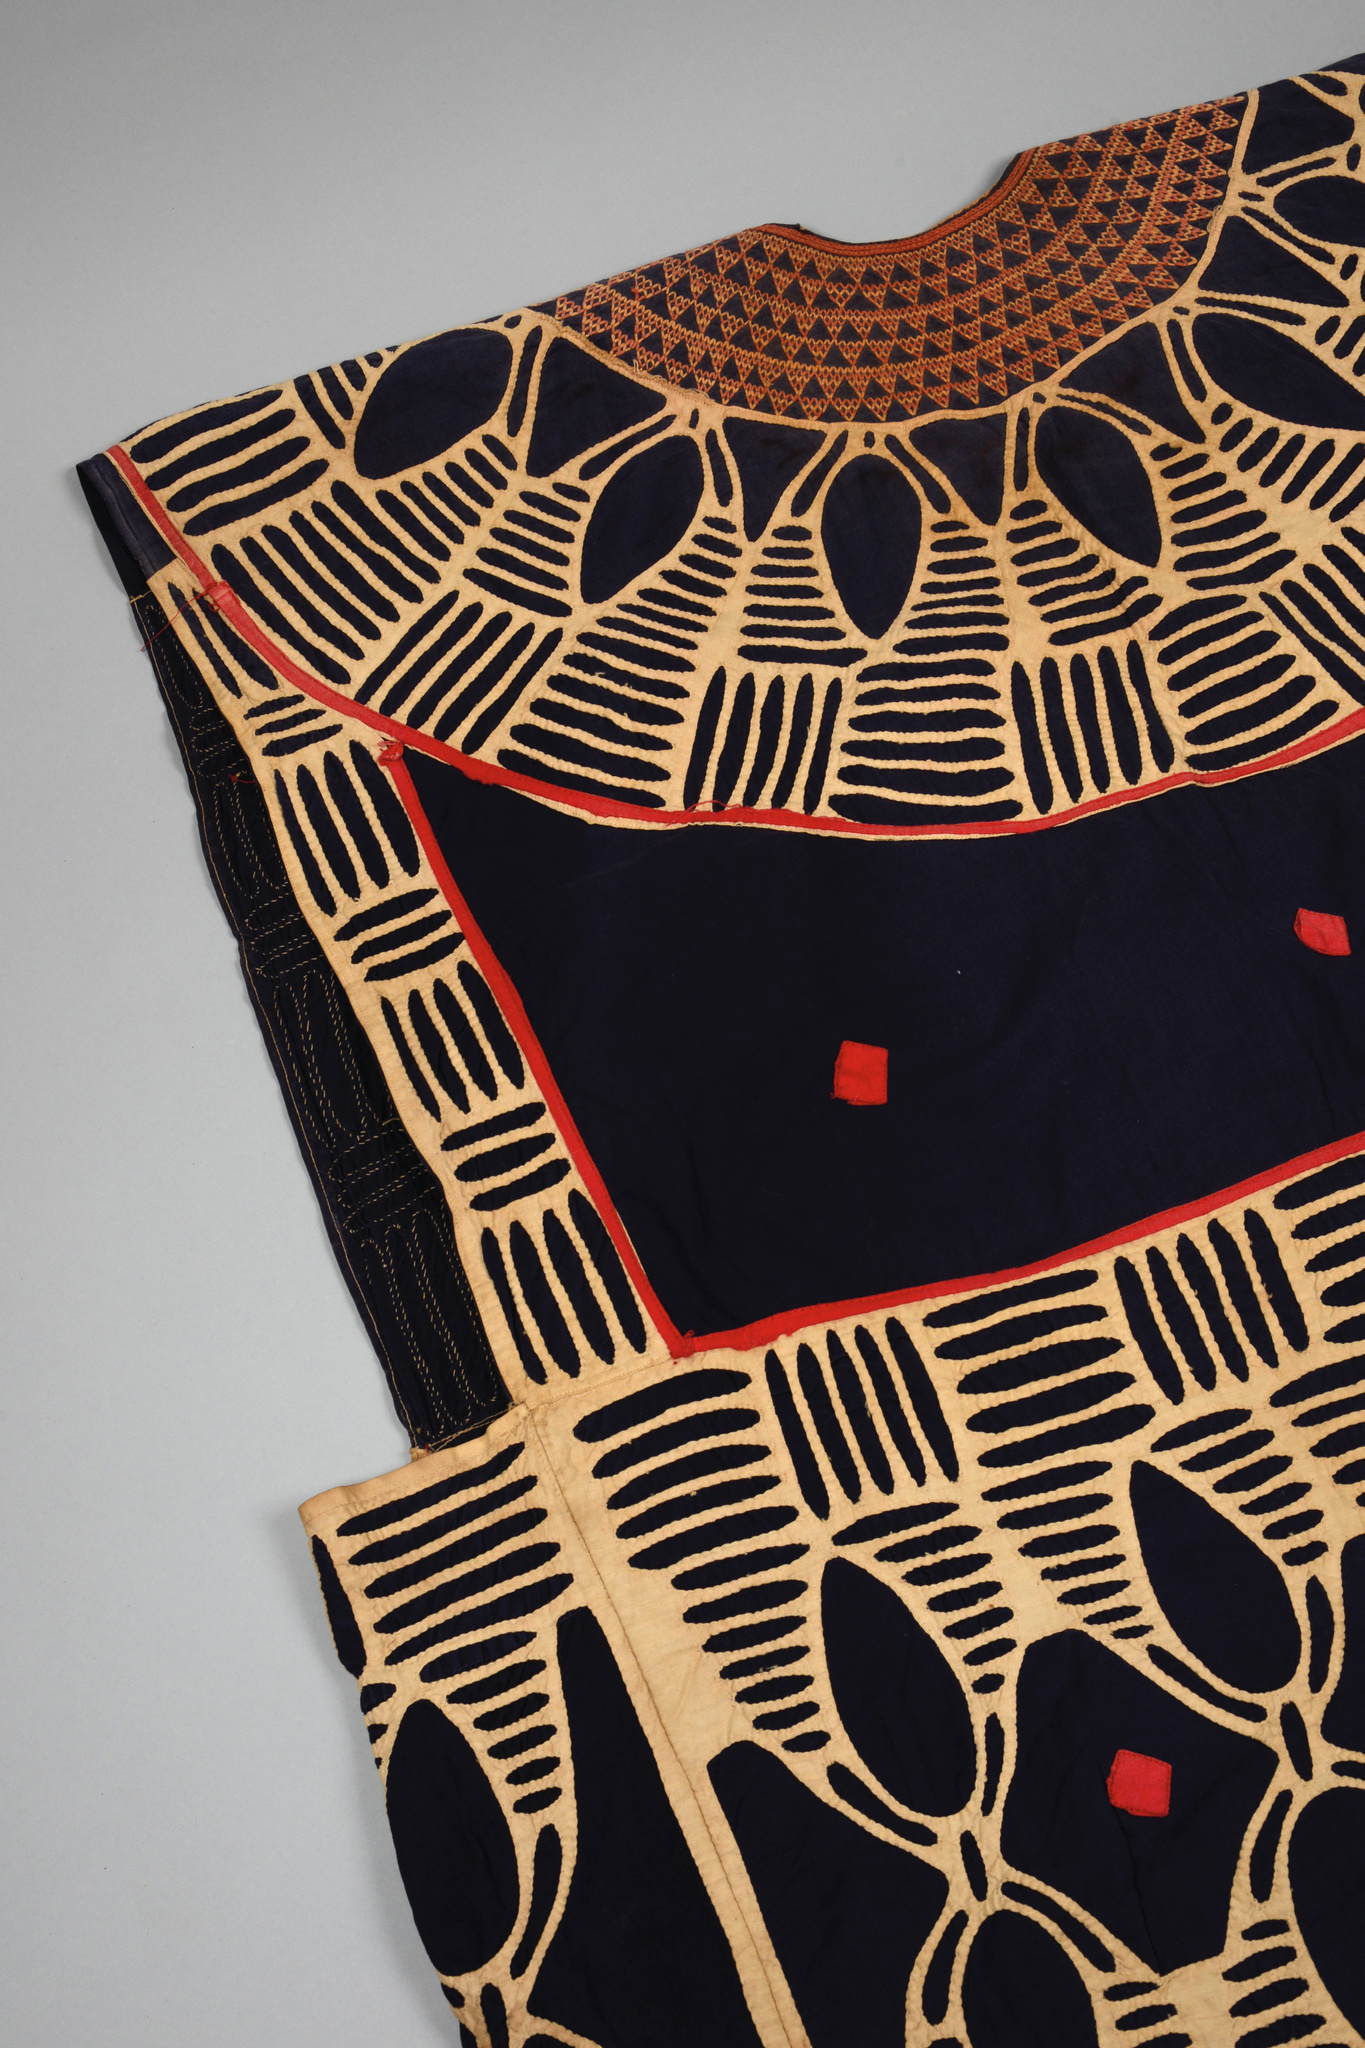 Tunic of a dignitary